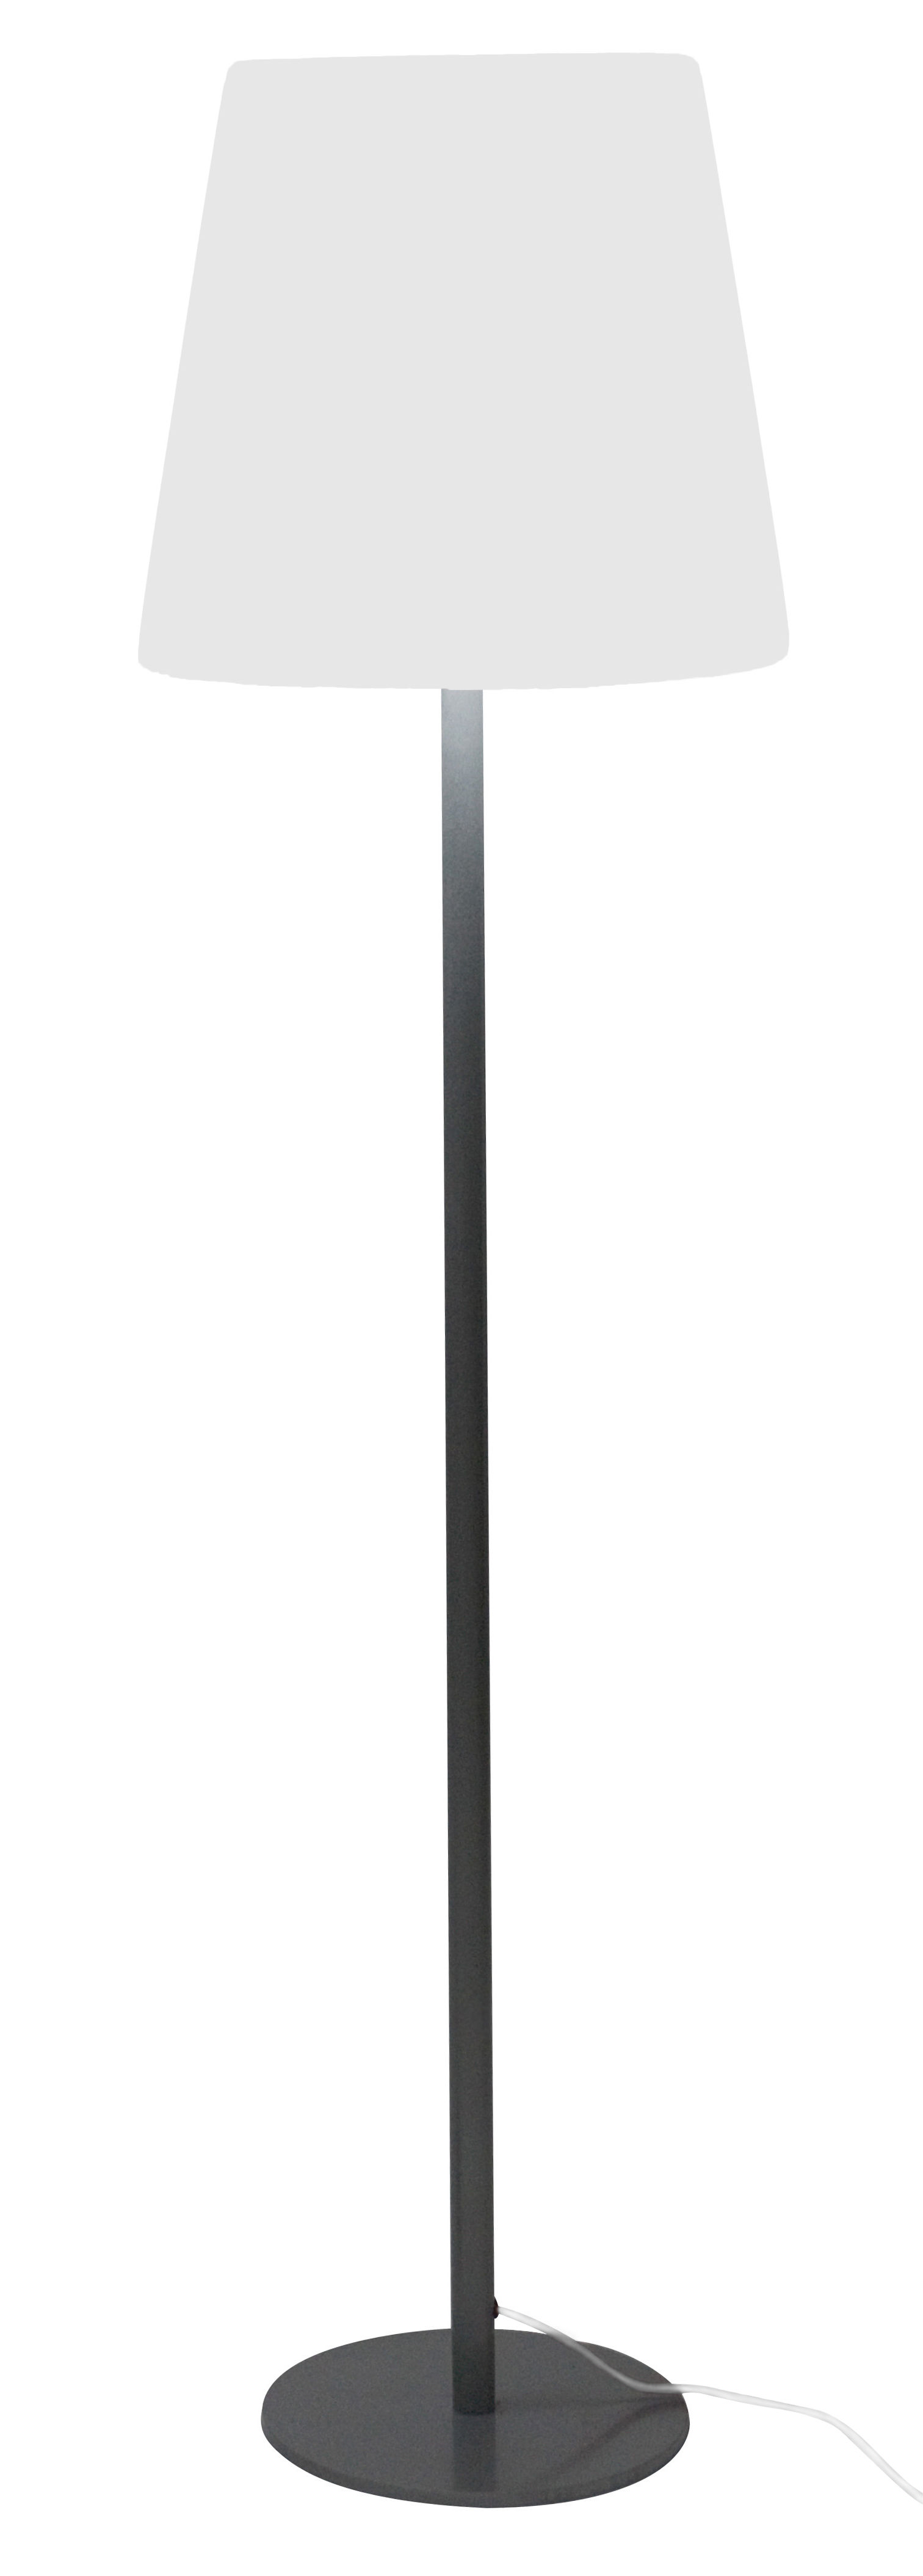 Lighting - Floor lamps - Ali Baba Floor lamp by Slide - Grey base / White lampshade - Polythene, Stainless steel